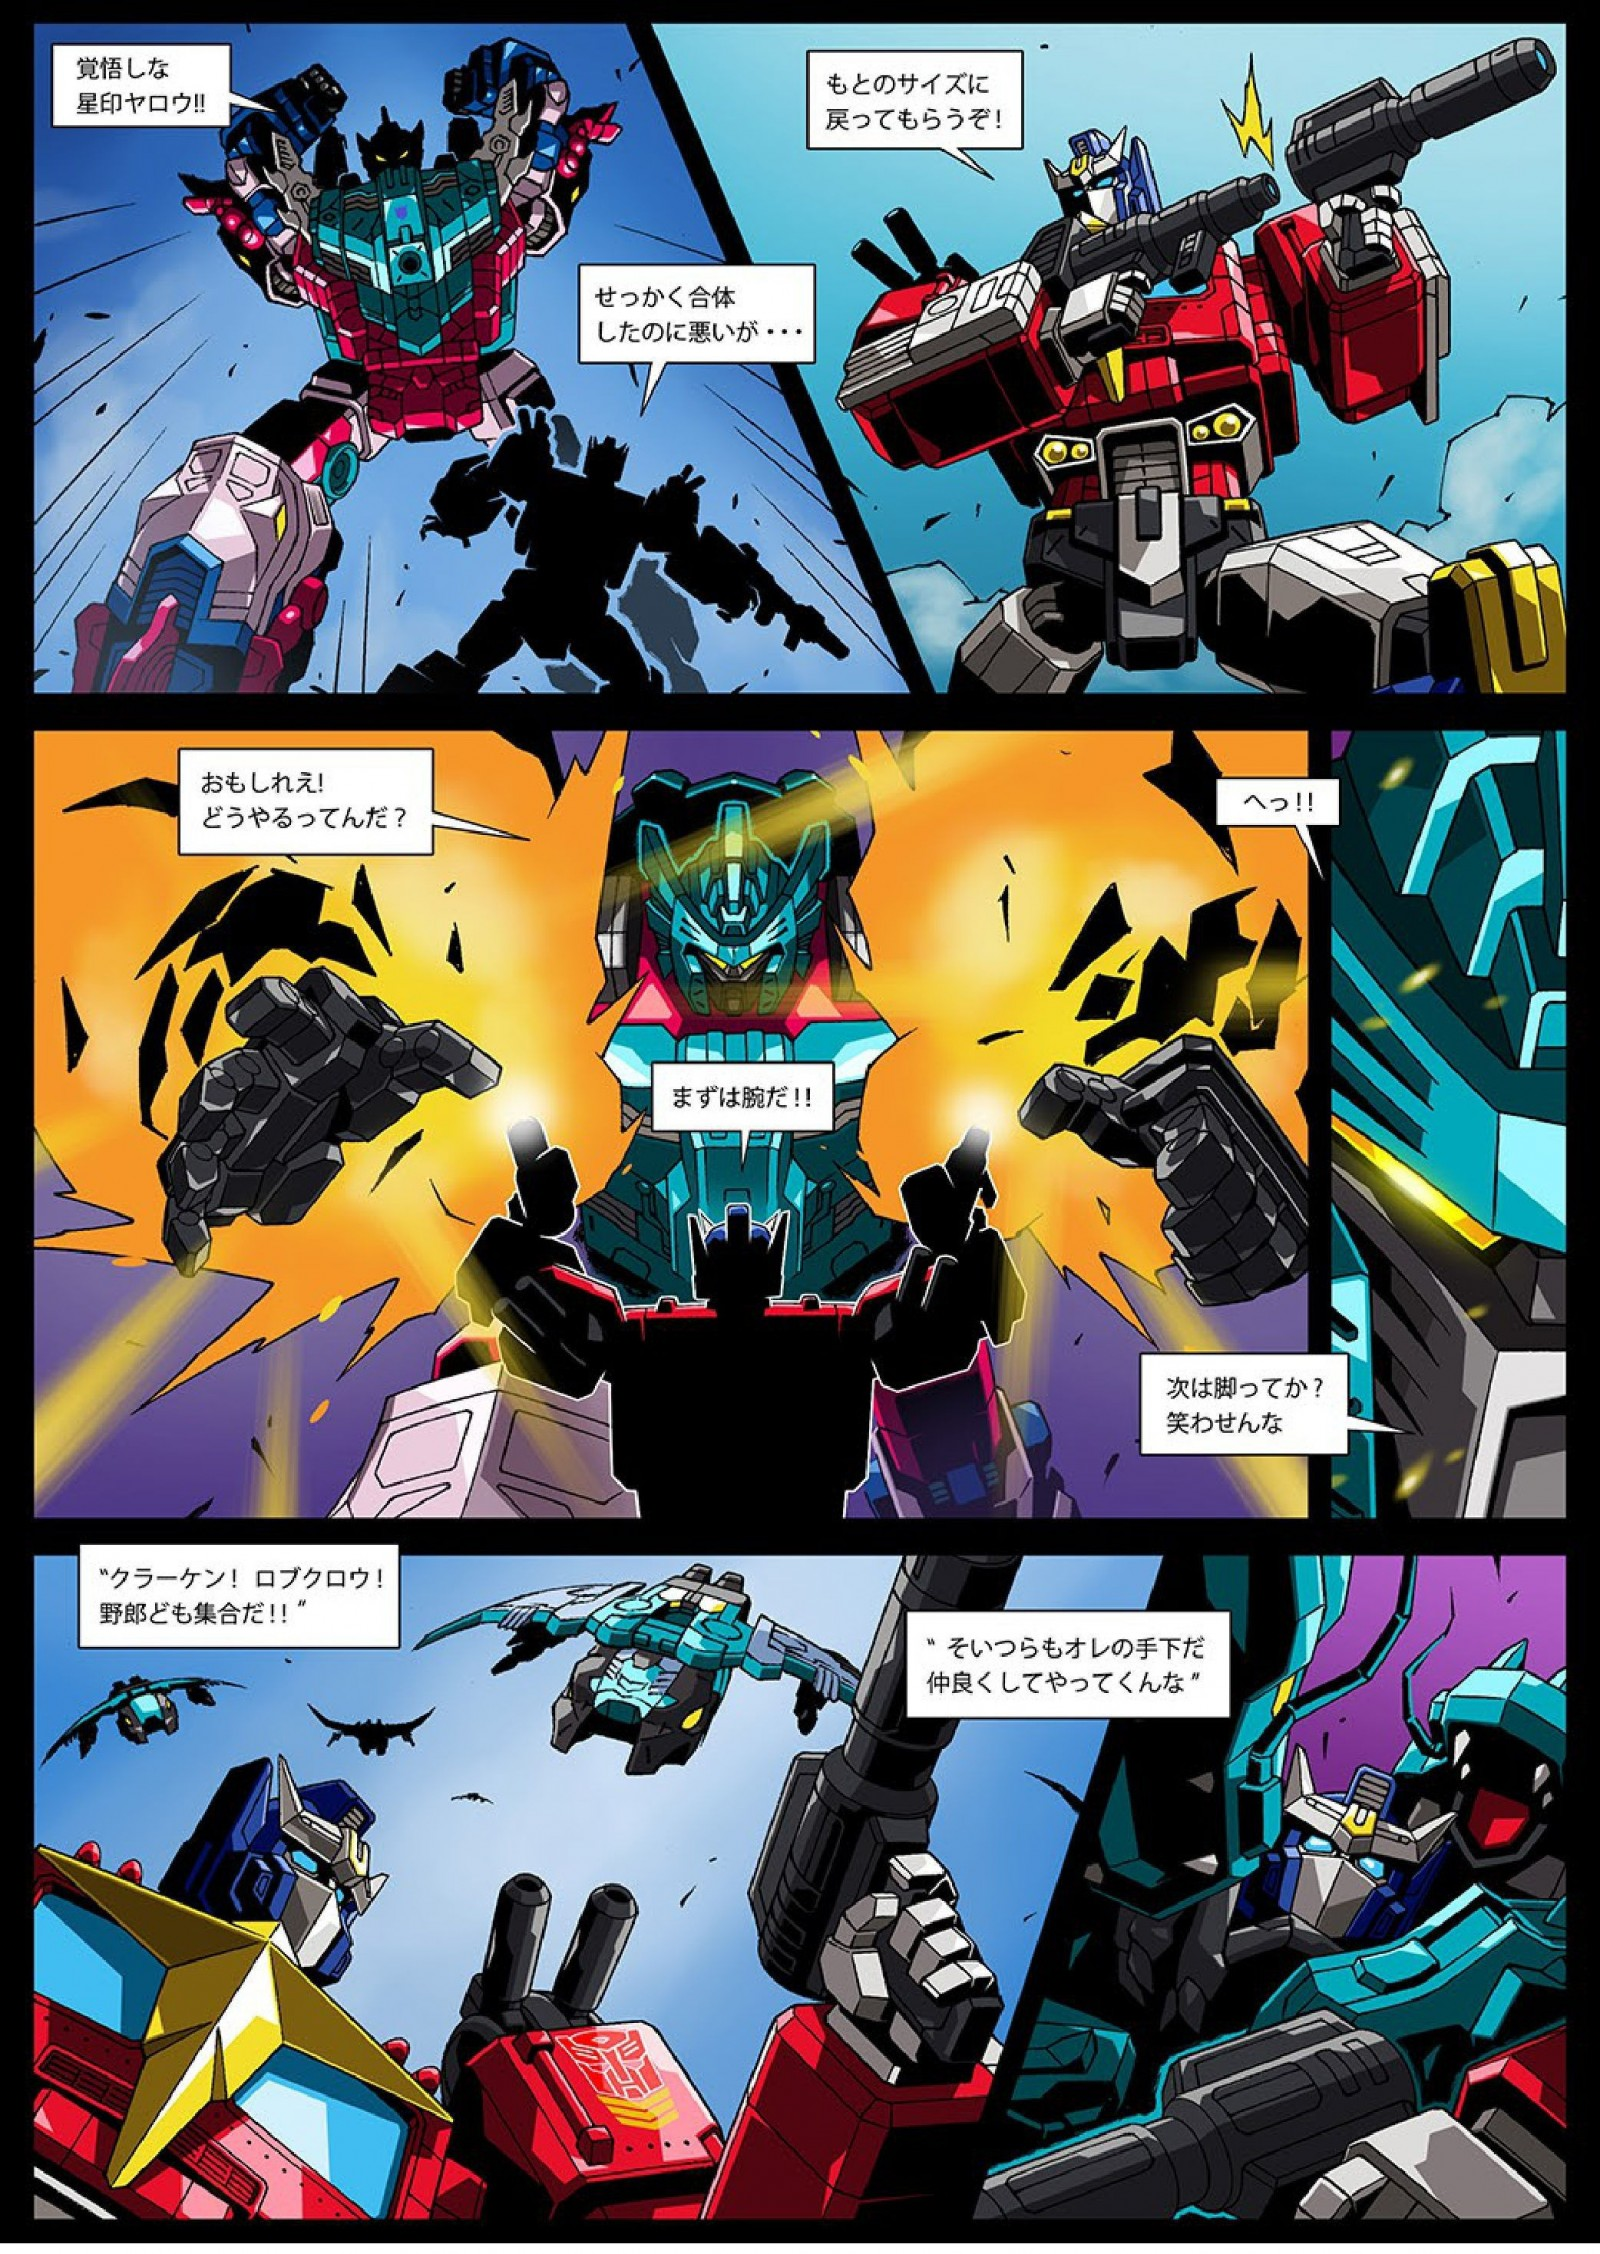 Transformers News: Re: Takara Tomy Posts New Online Manga for Selects Star Convoy